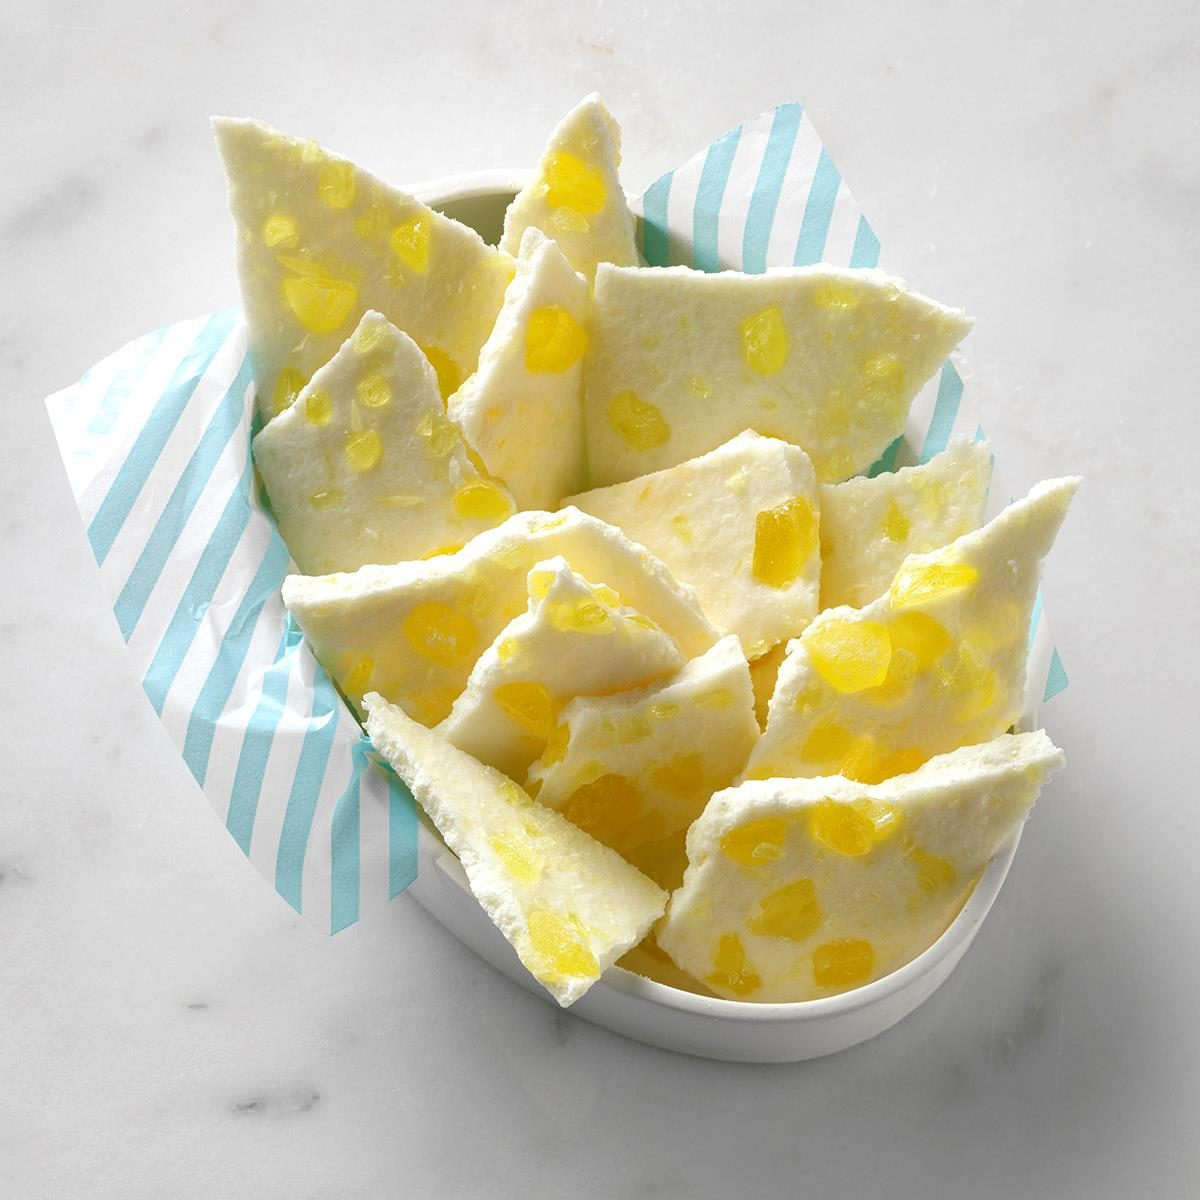 2-ingredient lemon bark made with white baking chips and lemon candies.